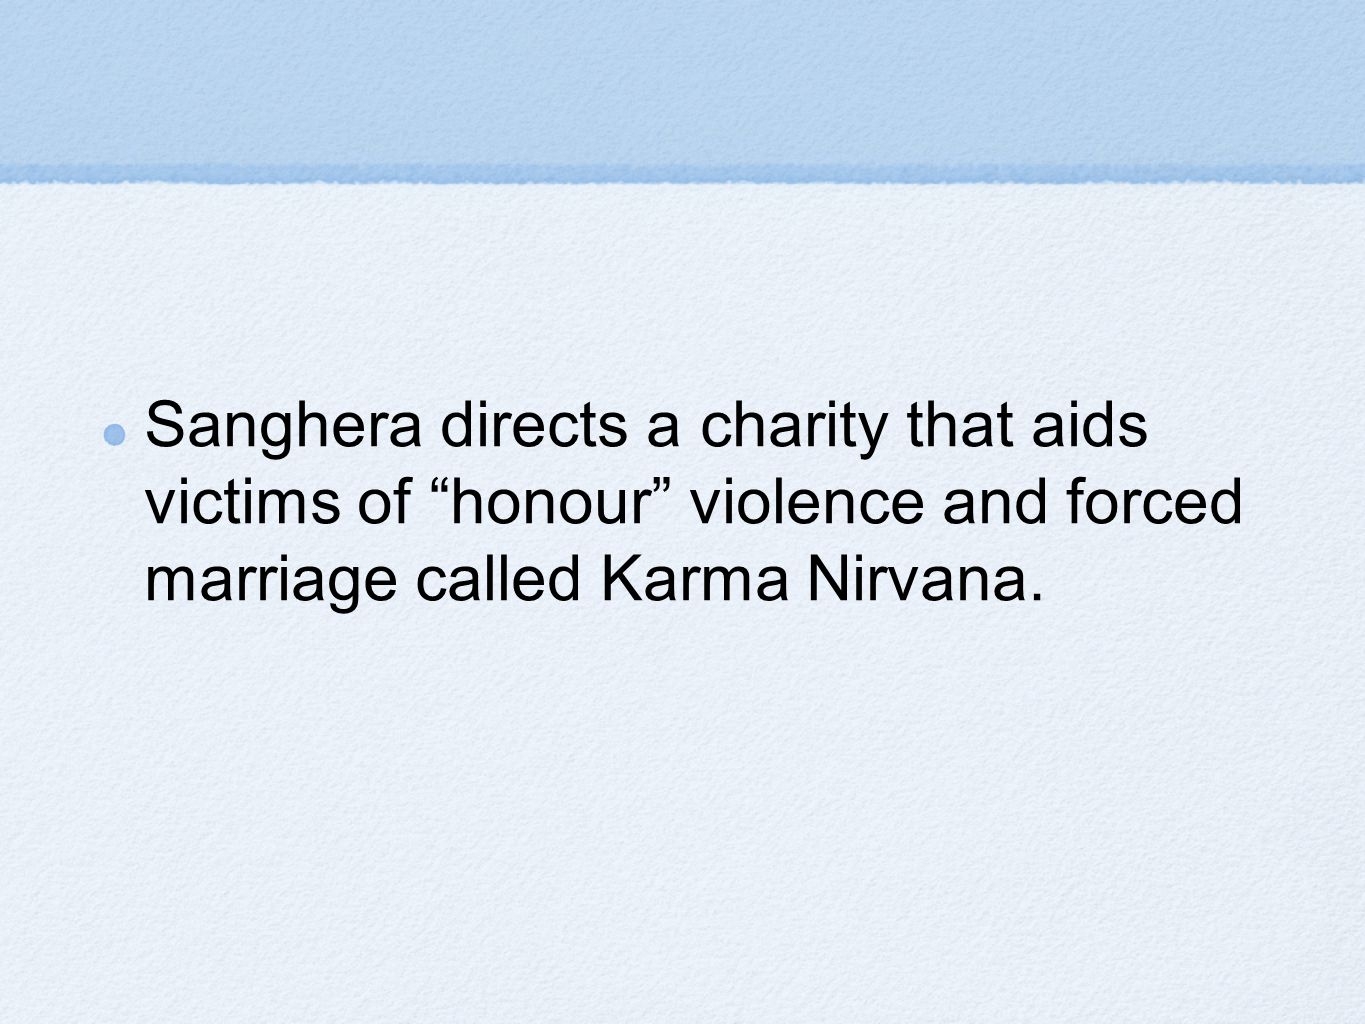 Sanghera directs a charity that aids victims of honour violence and forced marriage called Karma Nirvana.